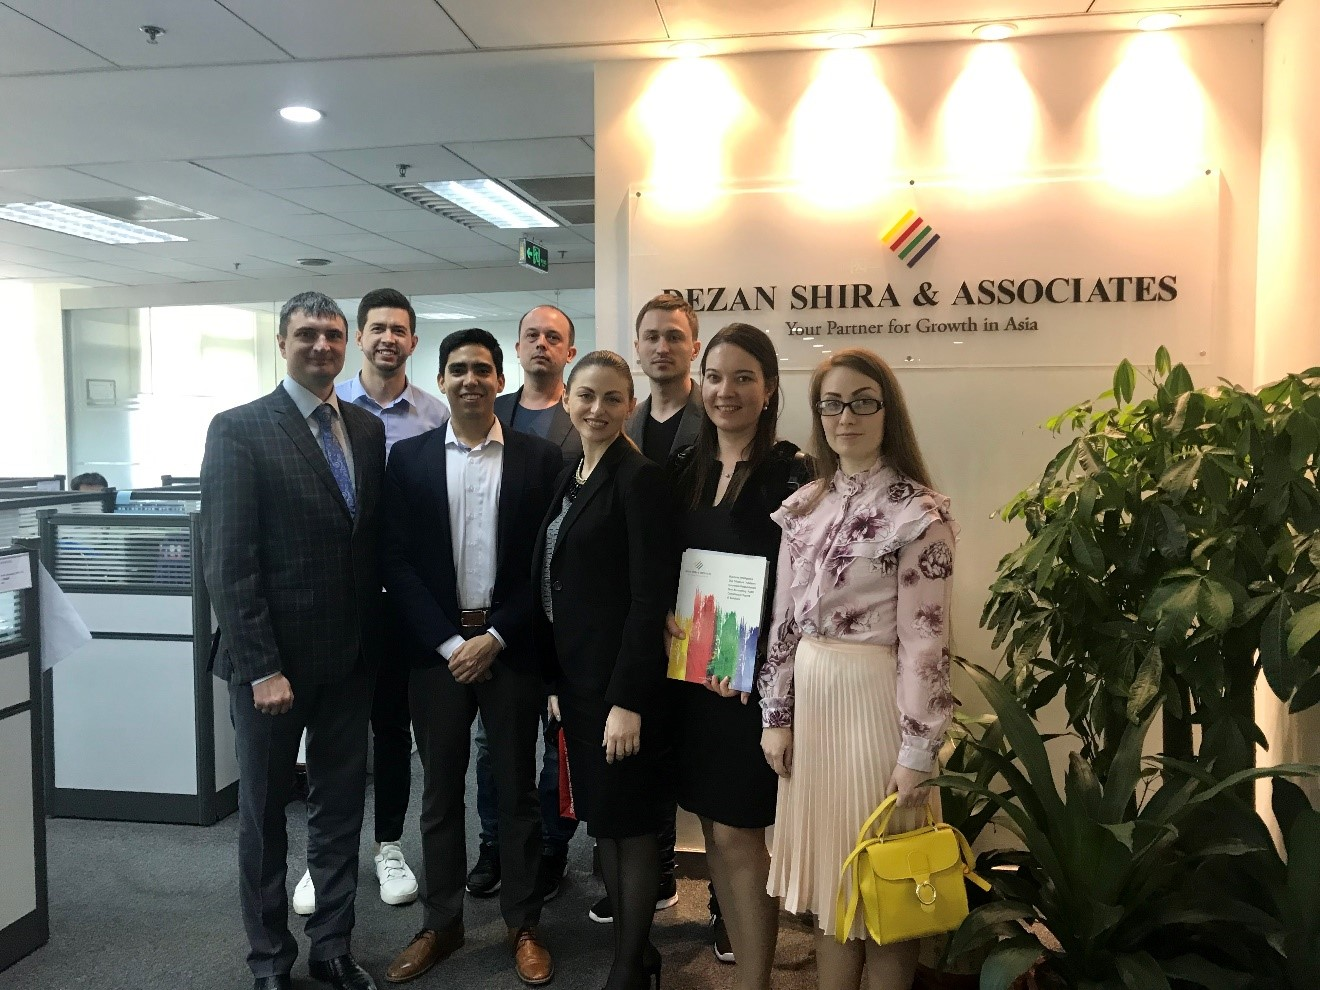 Juan and the Russian Business Delegation at Dezan Shira & Associates' Guangzhou office